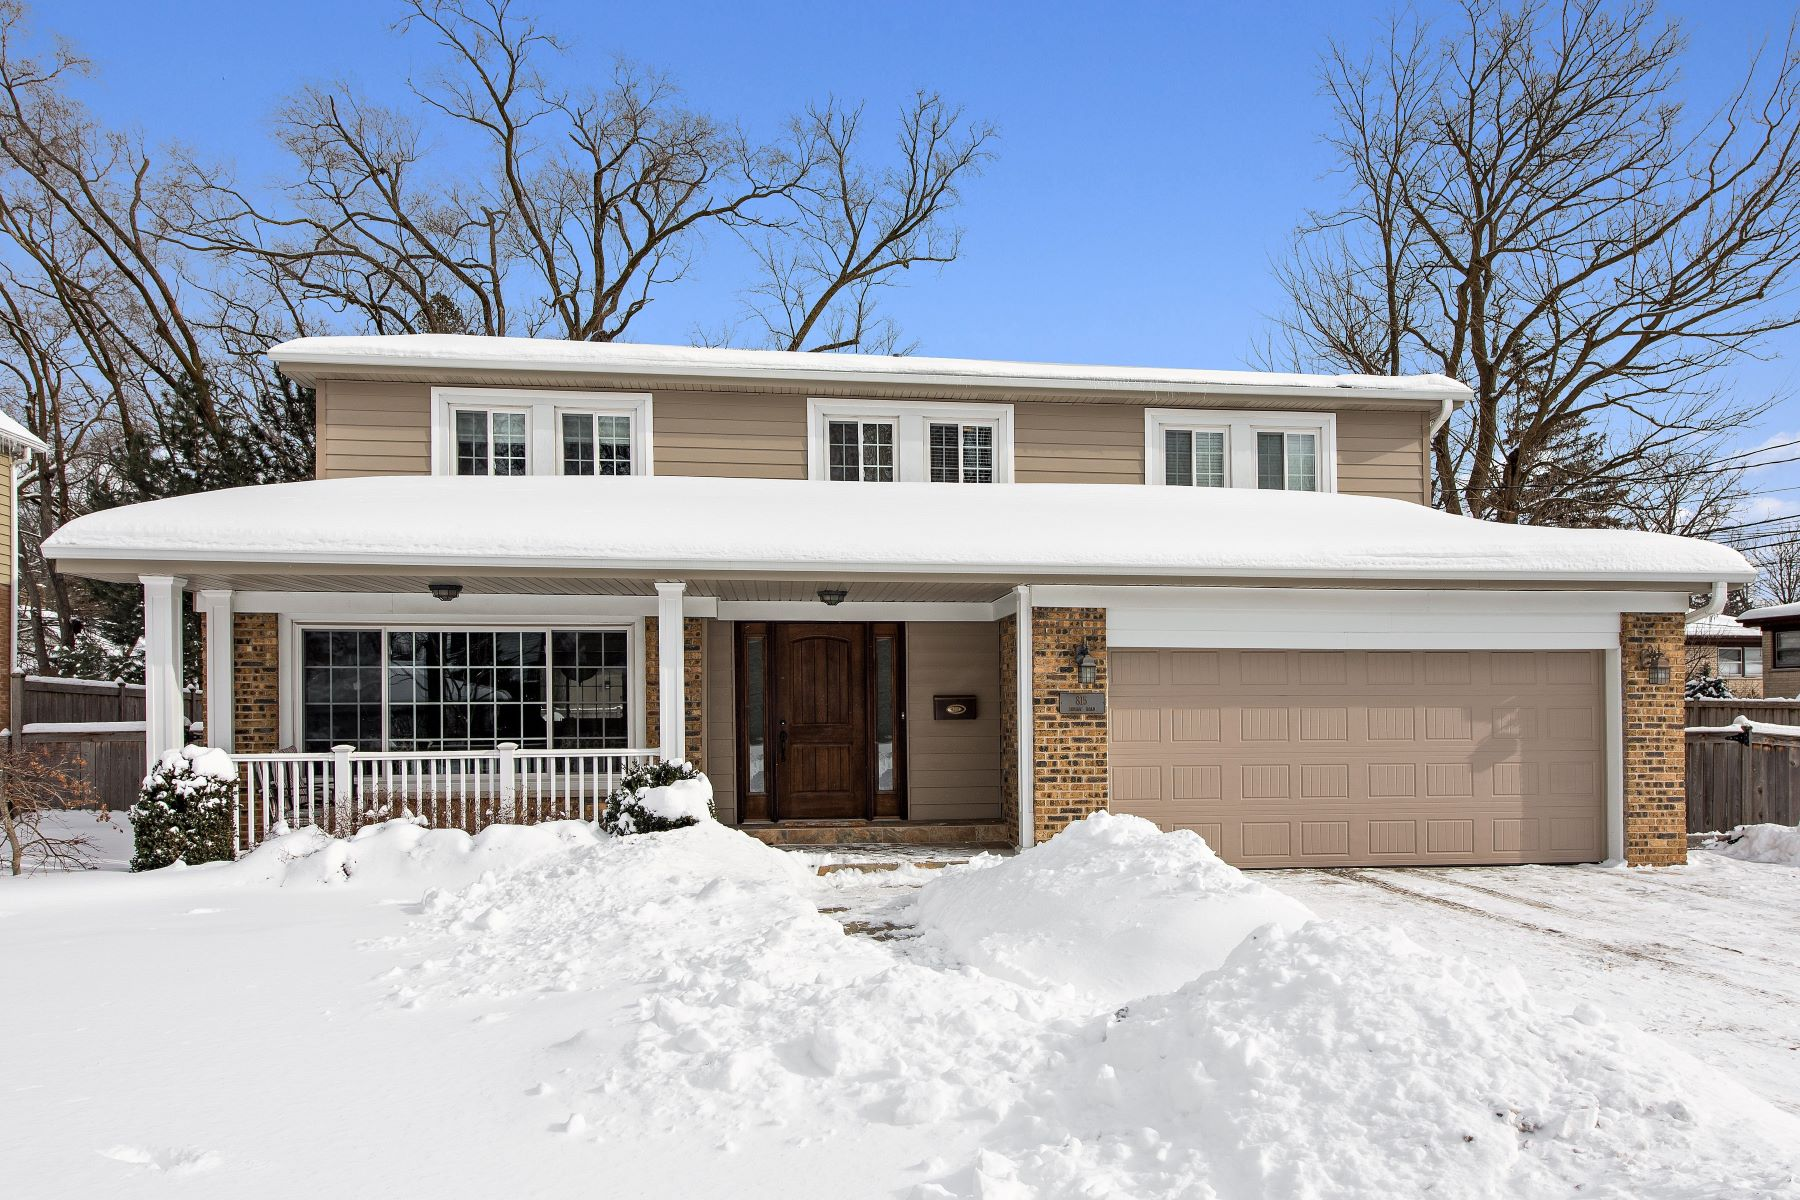 Single Family Home for Sale at Spacious Colonial 815 Indian Road Glenview, Illinois 60025 United States